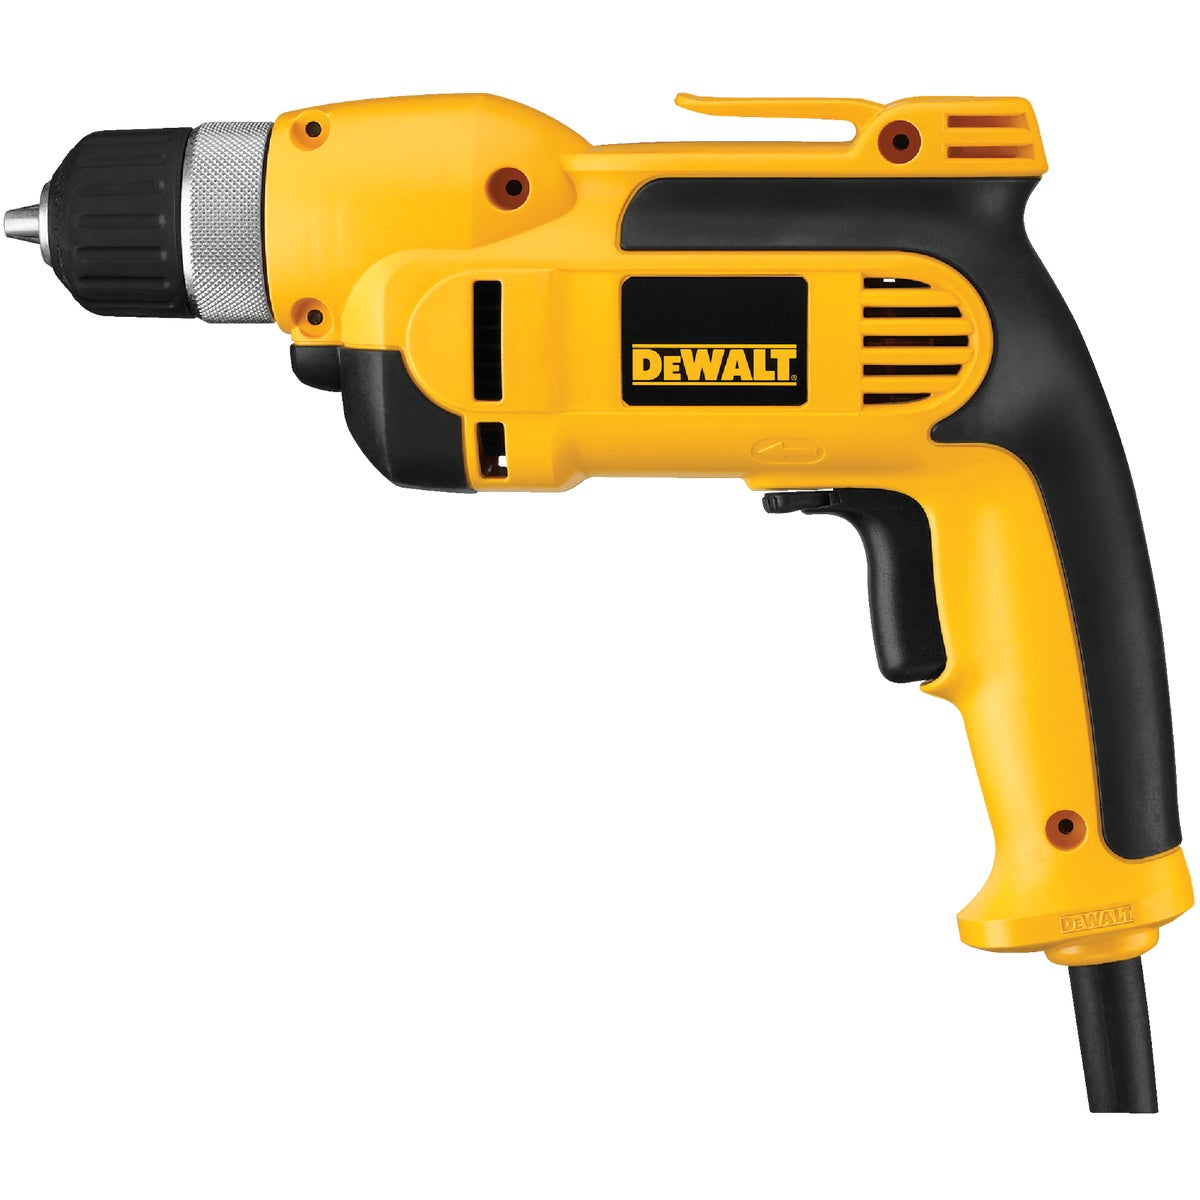 "7A 3/8"" VSR DRILL W/BOX - DWD110K by DeWalt"